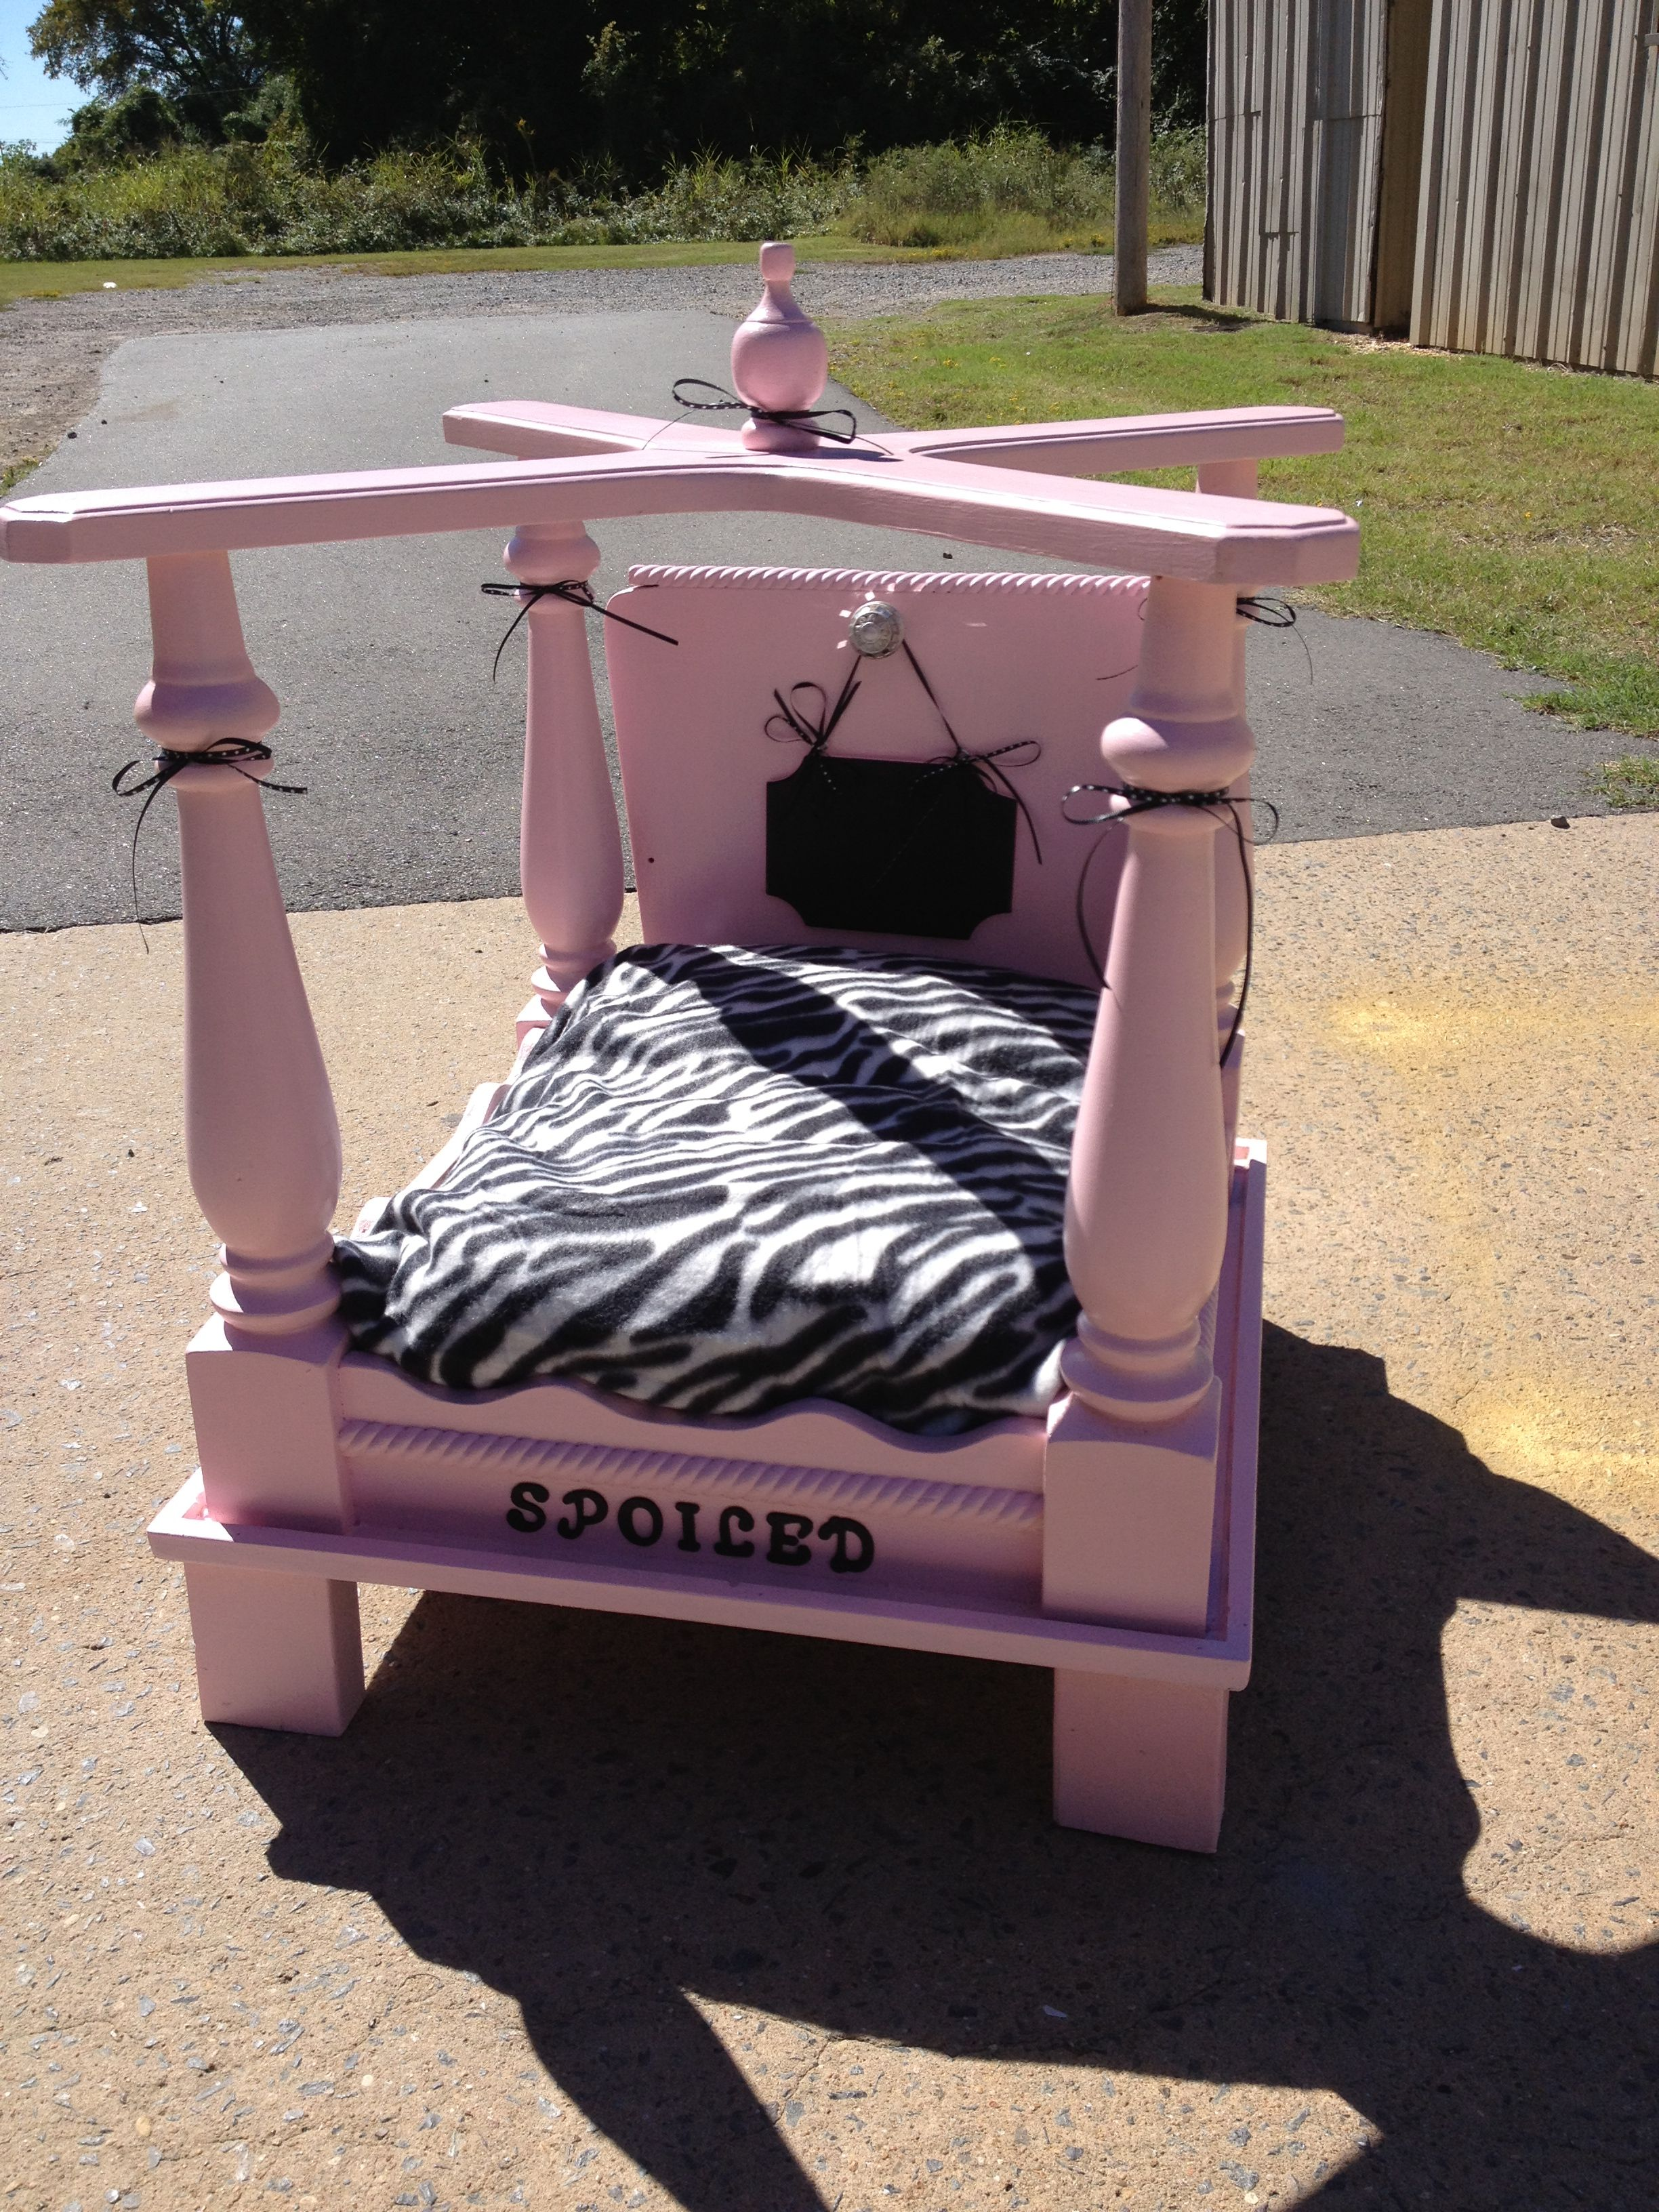 Pin by Kristy on Doggie beds by Kristy